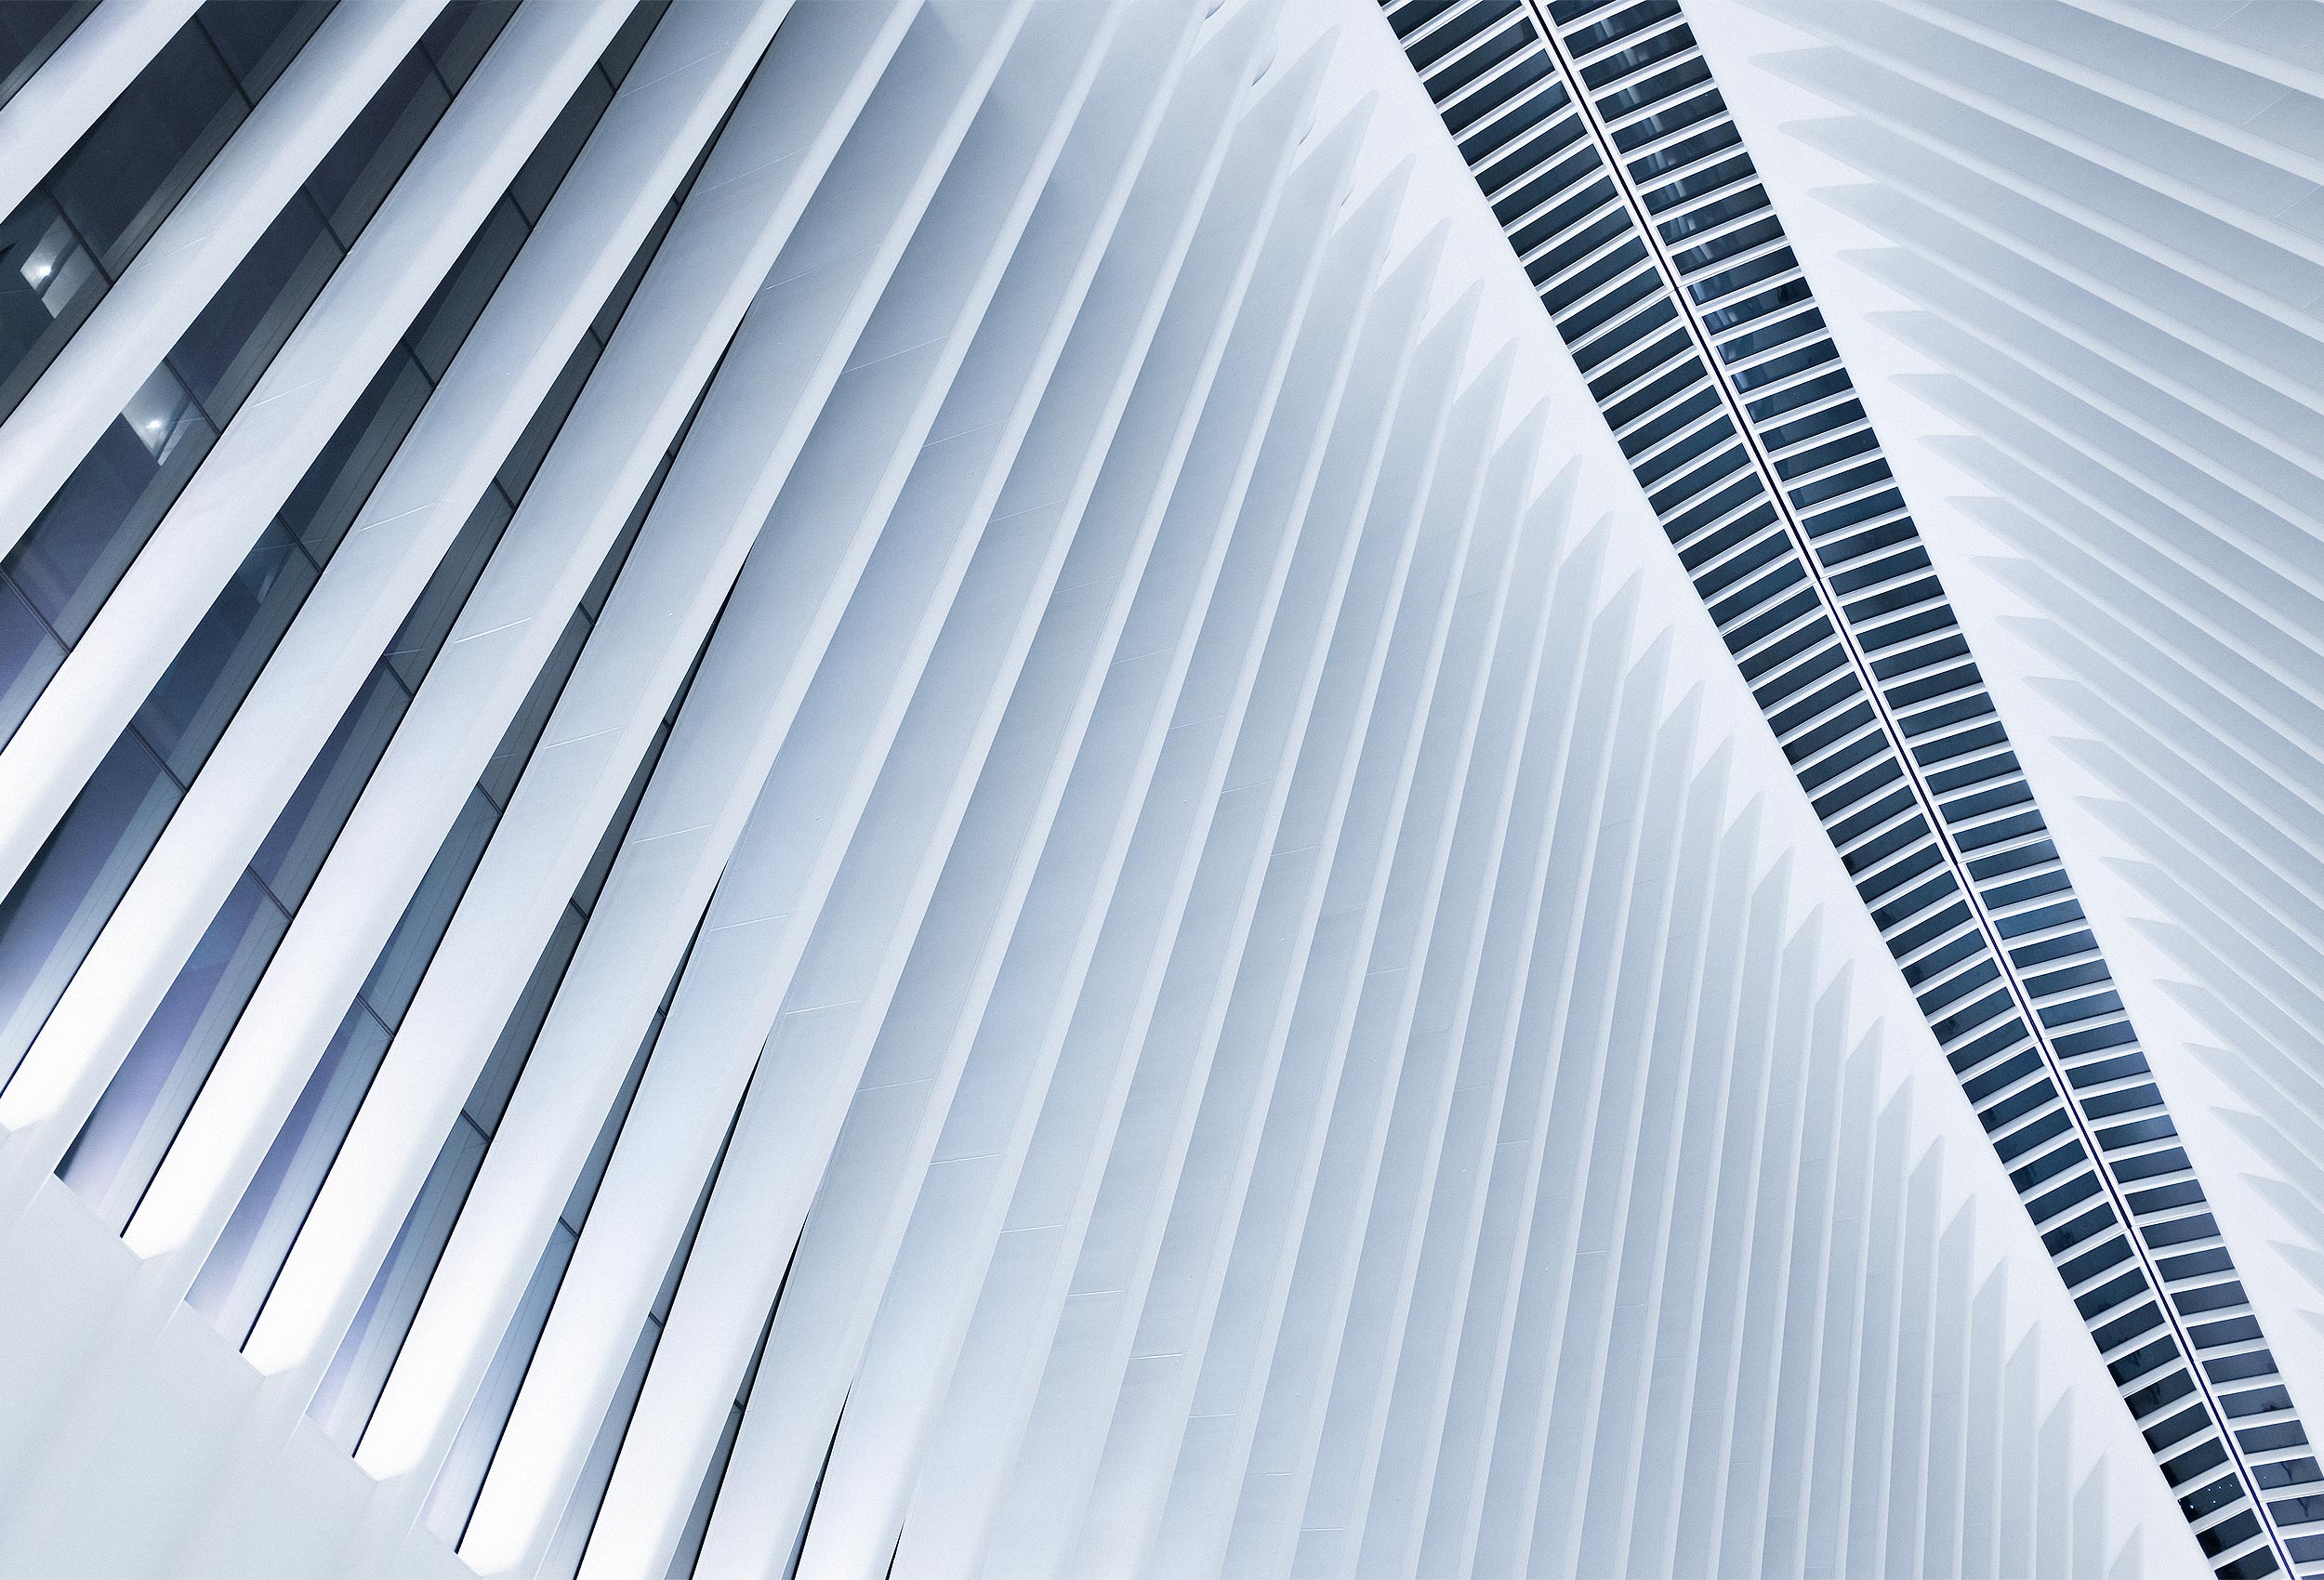 Oculus by architectural photographer Kristopher Grunert